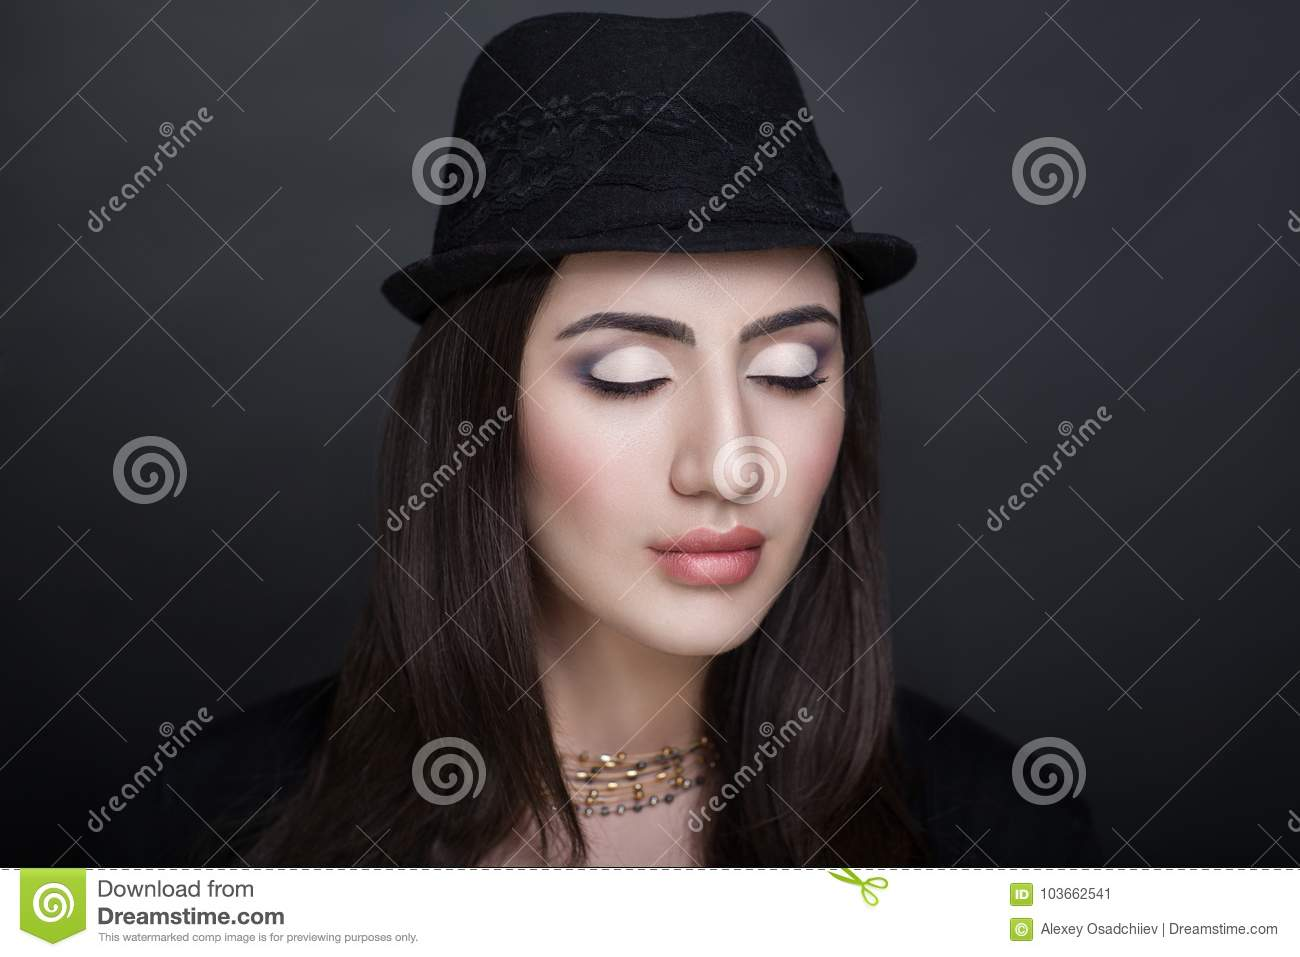 Woman black hat stock image  Image of jewellery, person